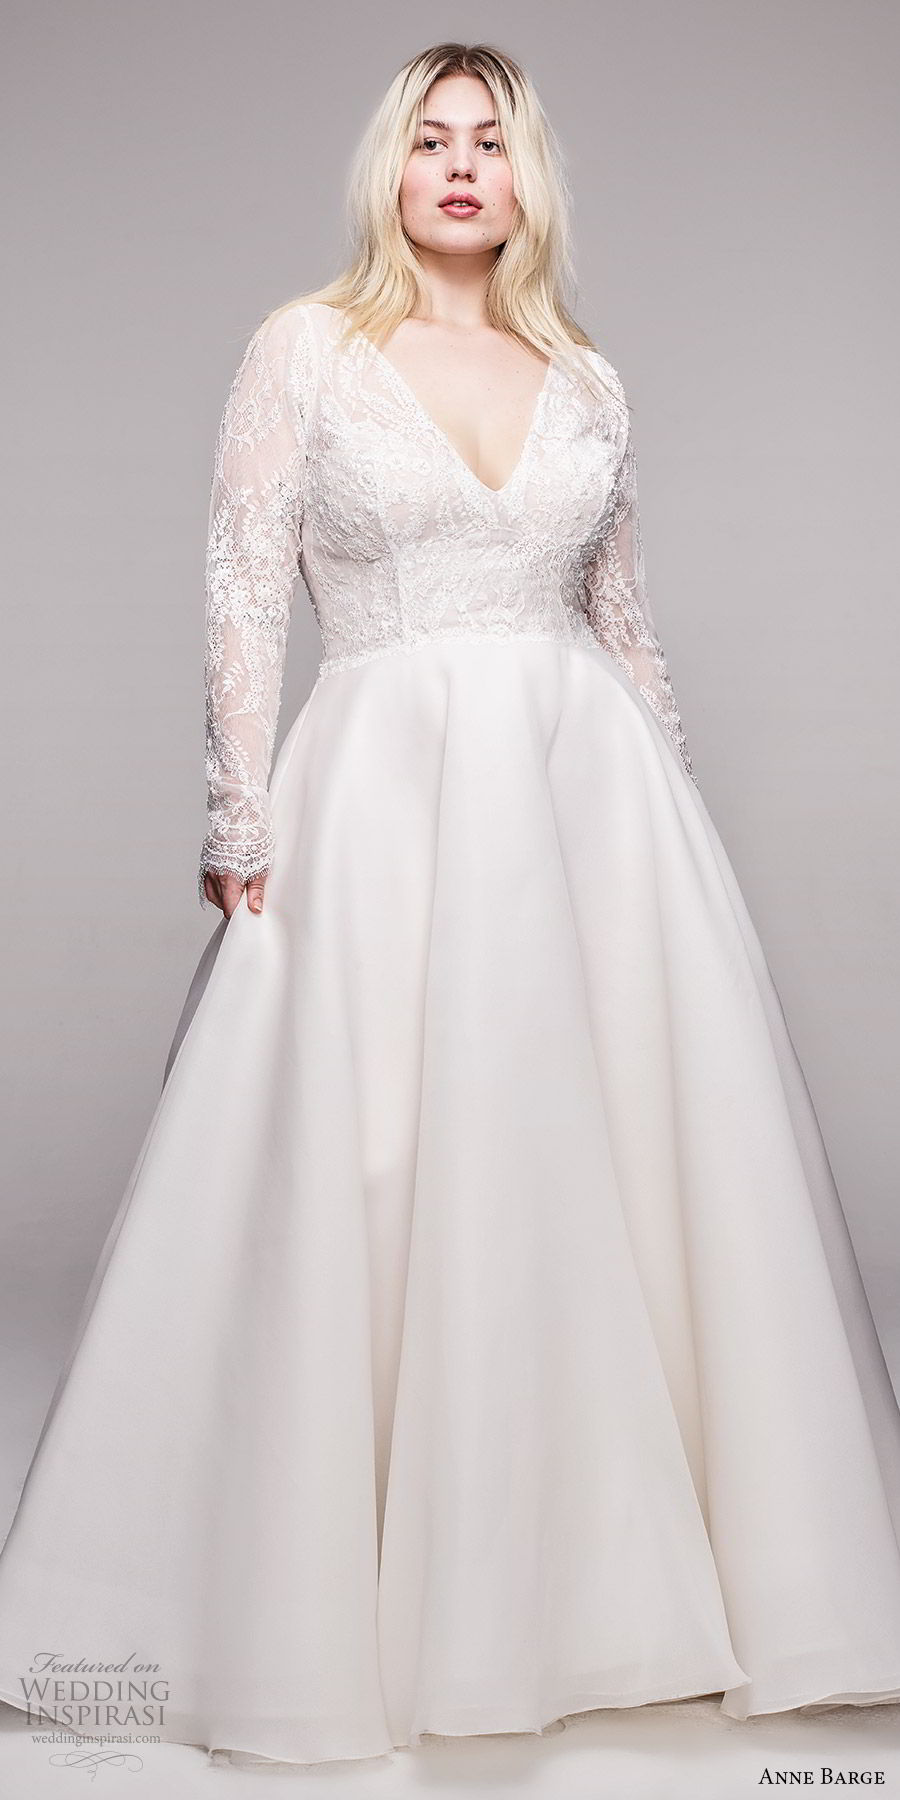 anne barge 2020 bridal plus size illusion long sleeves v neckling embellished lace bodice a line ball gown wedding dress (8) romantic elegant chapel train mv